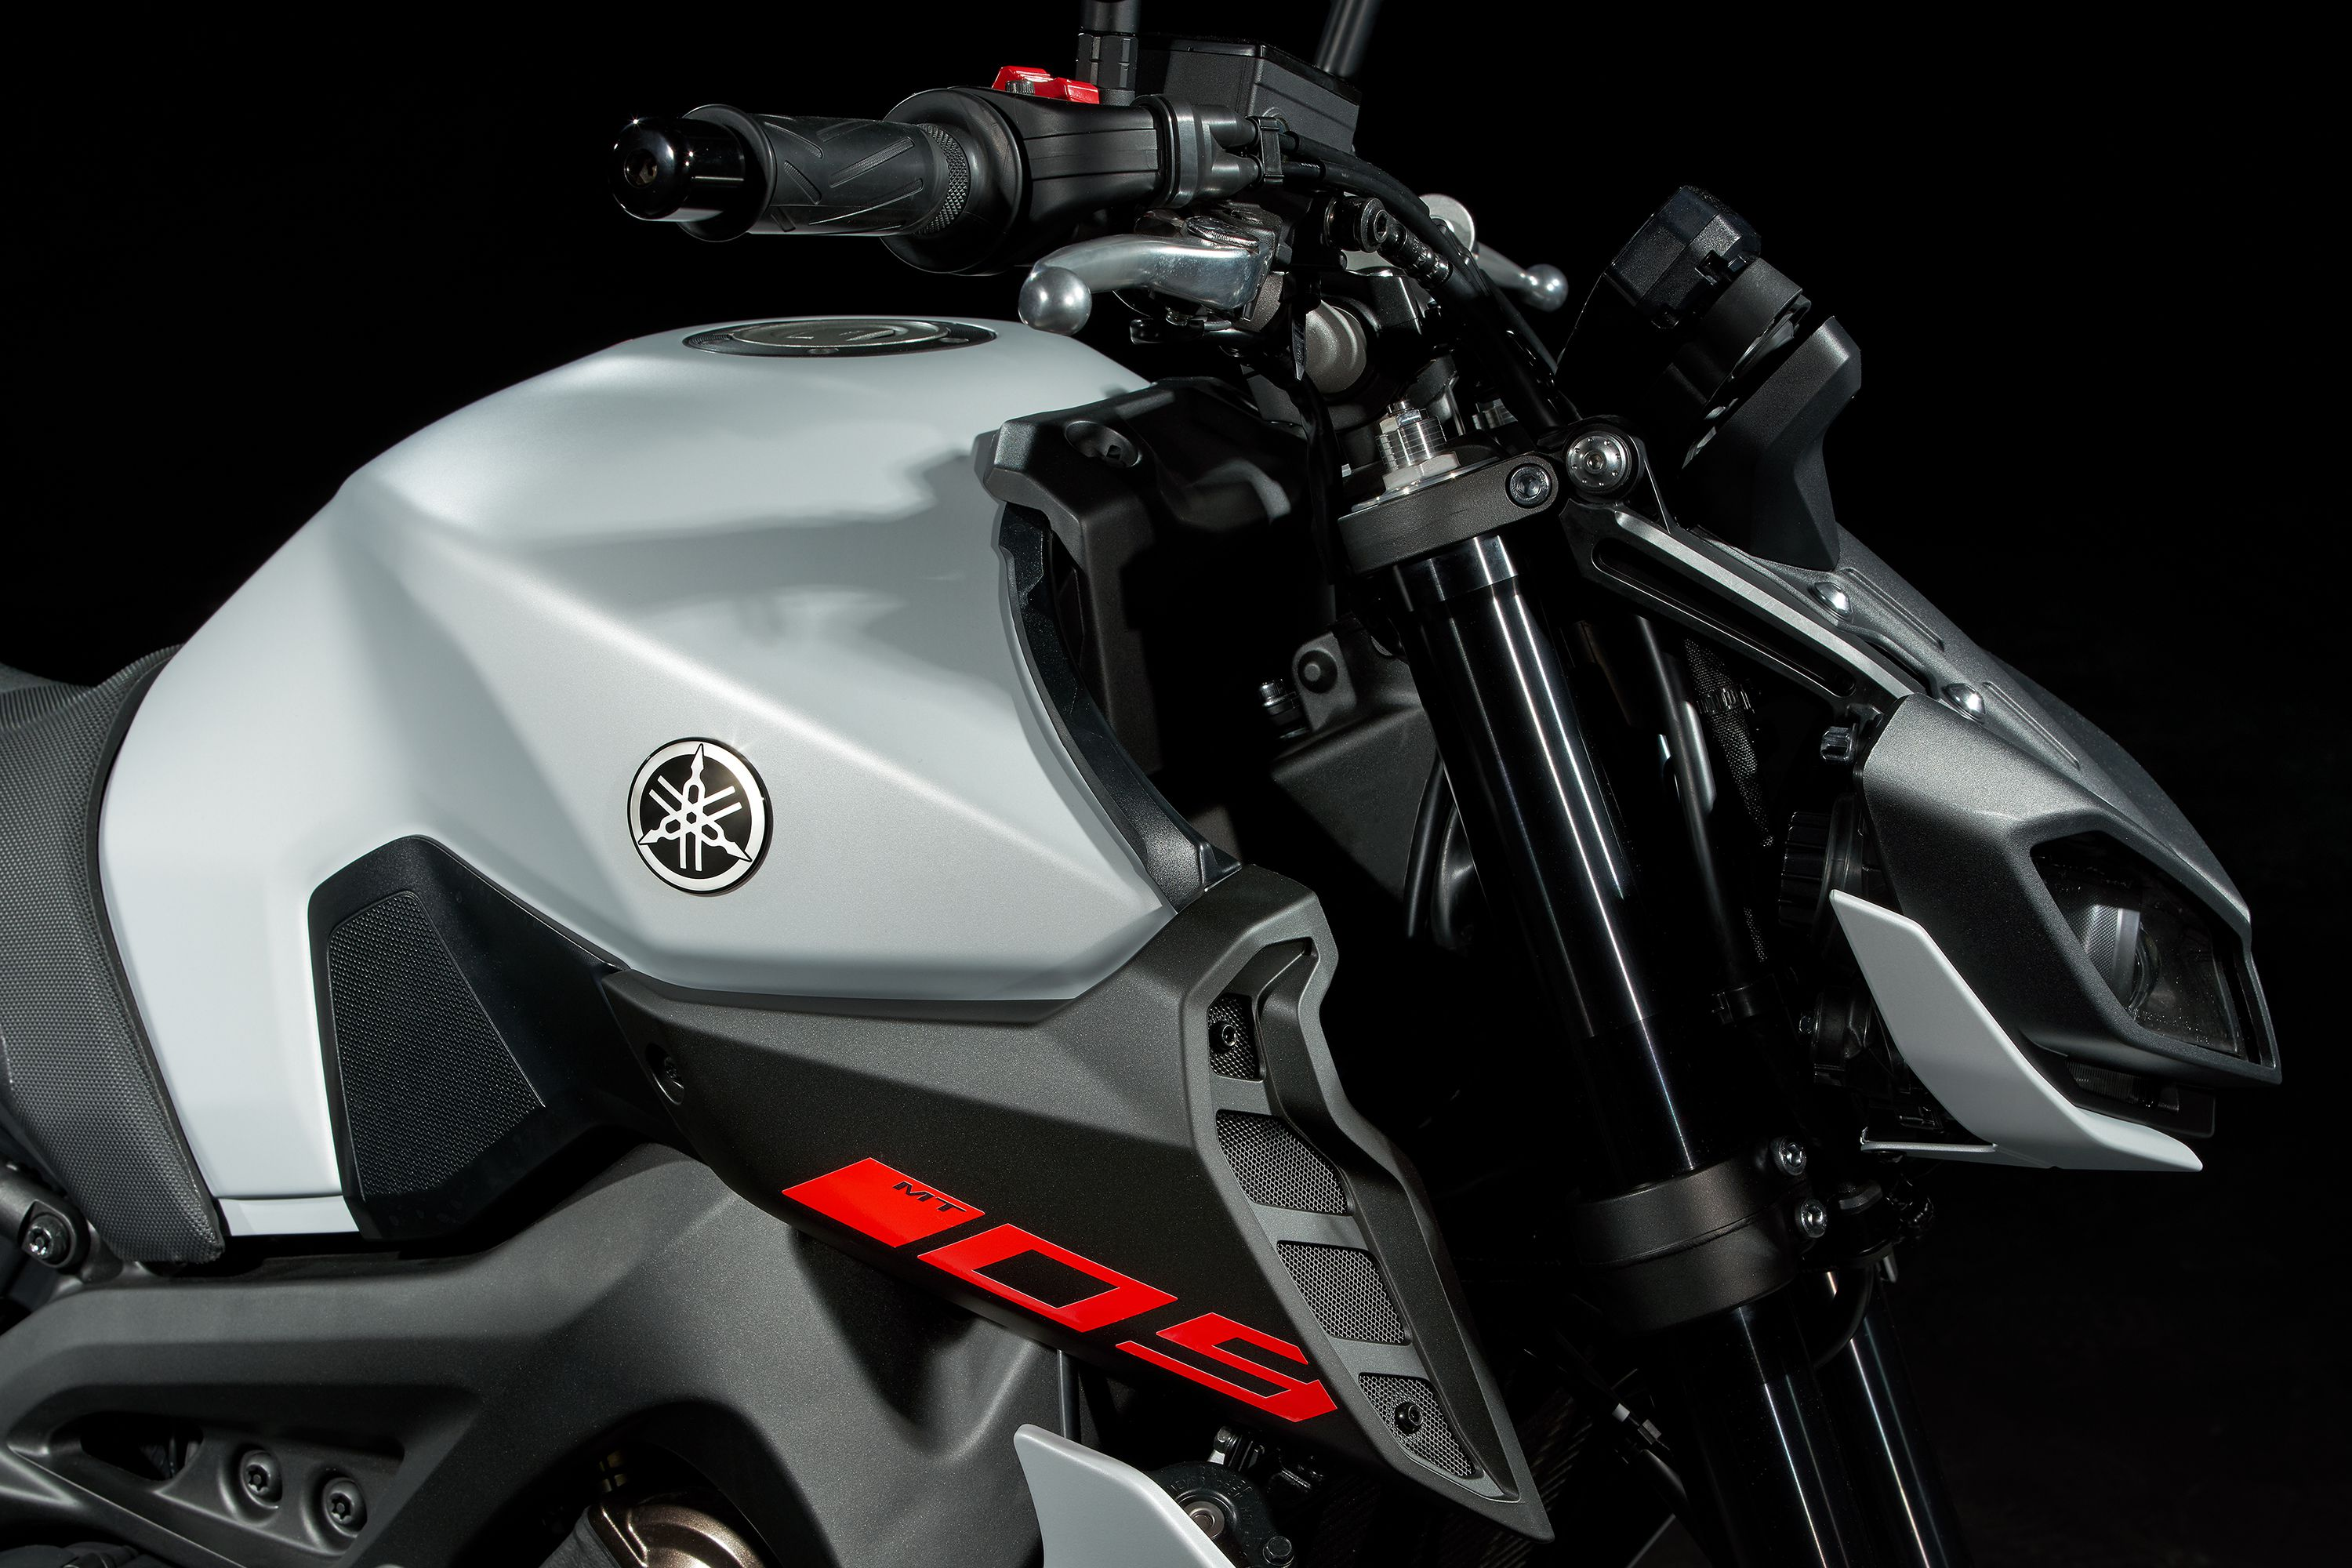 With its 3.7-gallon fuel capacity and claimed 44 mpg fuel economy the 2020 Yamaha MT-09 should offer up to 160 miles of fuel range when you hit the road.